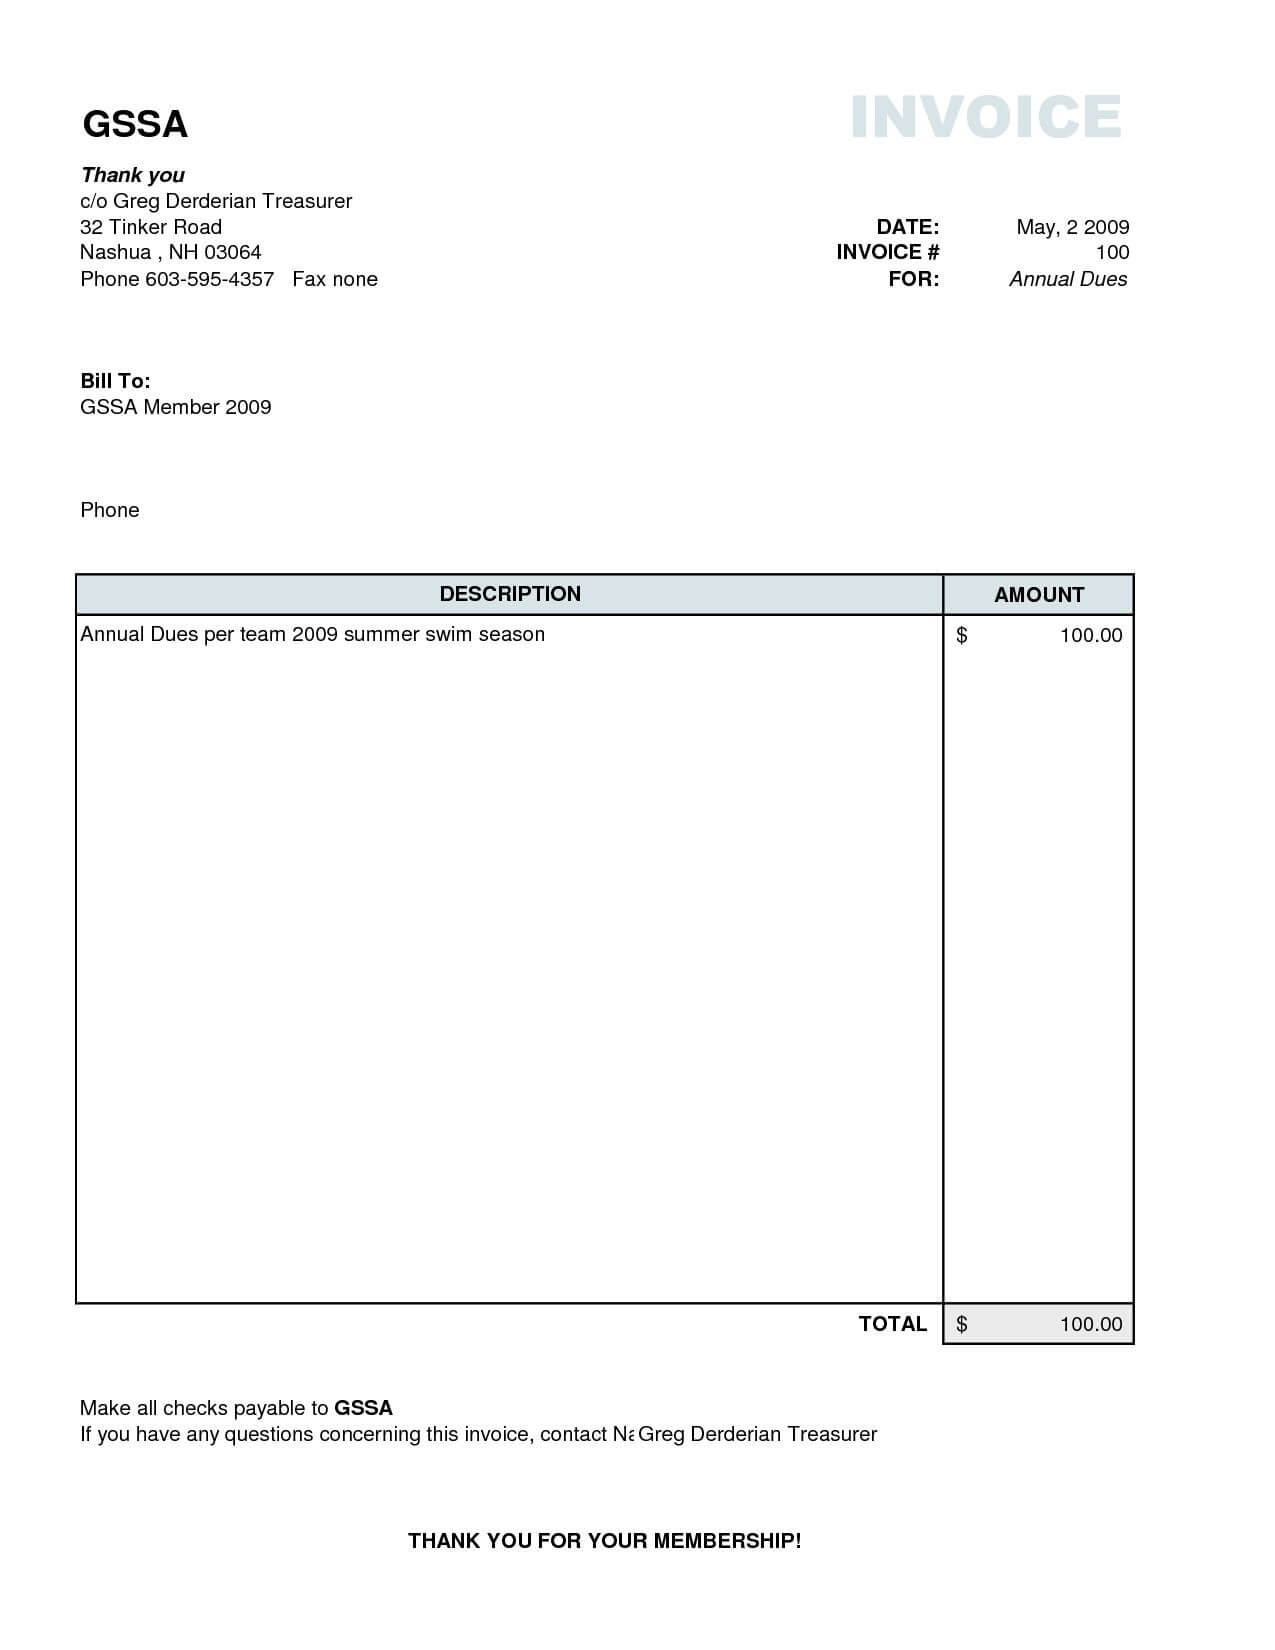 Simple Invoice Template Word Office Back Simple Invoice Form For Microsoft Office Word Invoice Template